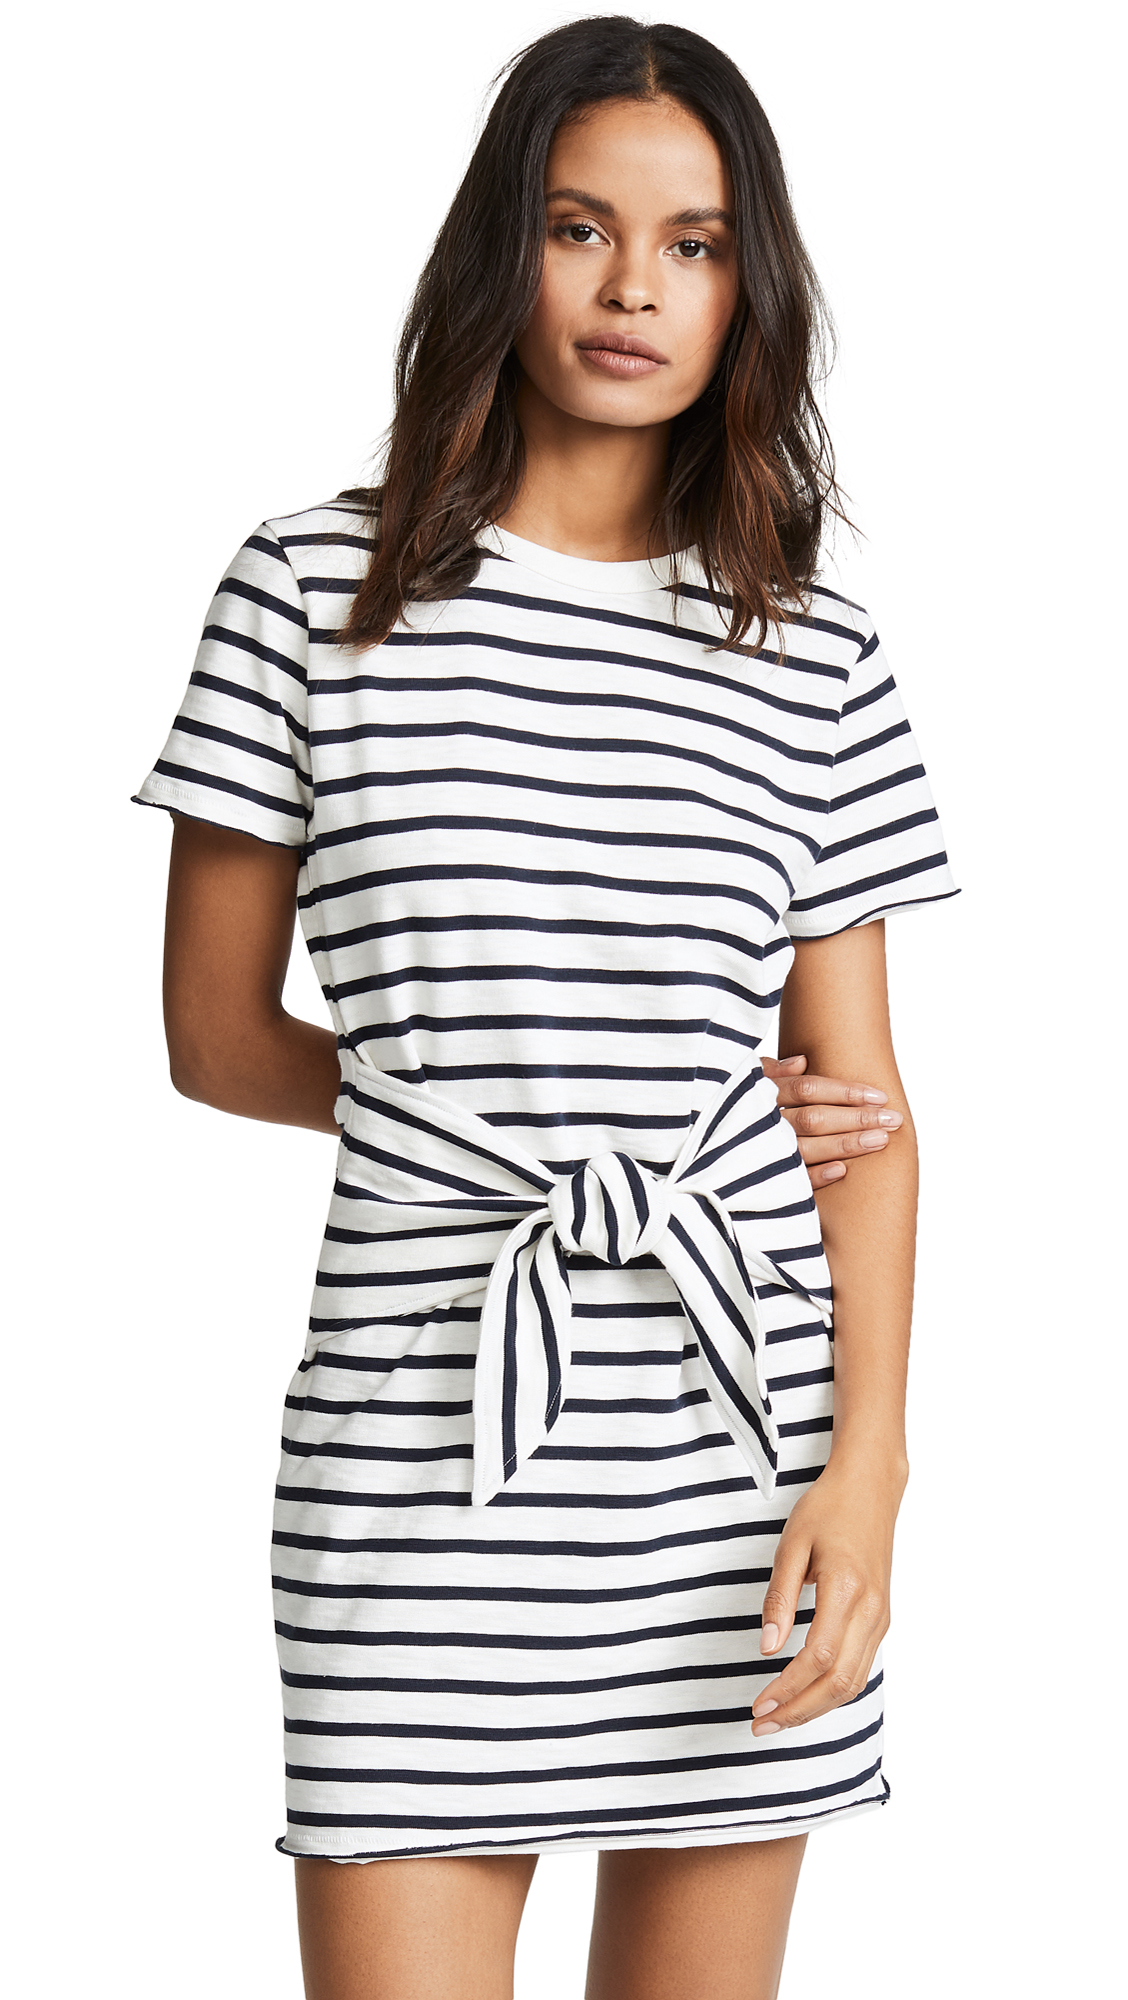 Rag & Bone/JEAN Halsey Tie Dress In White/Navy